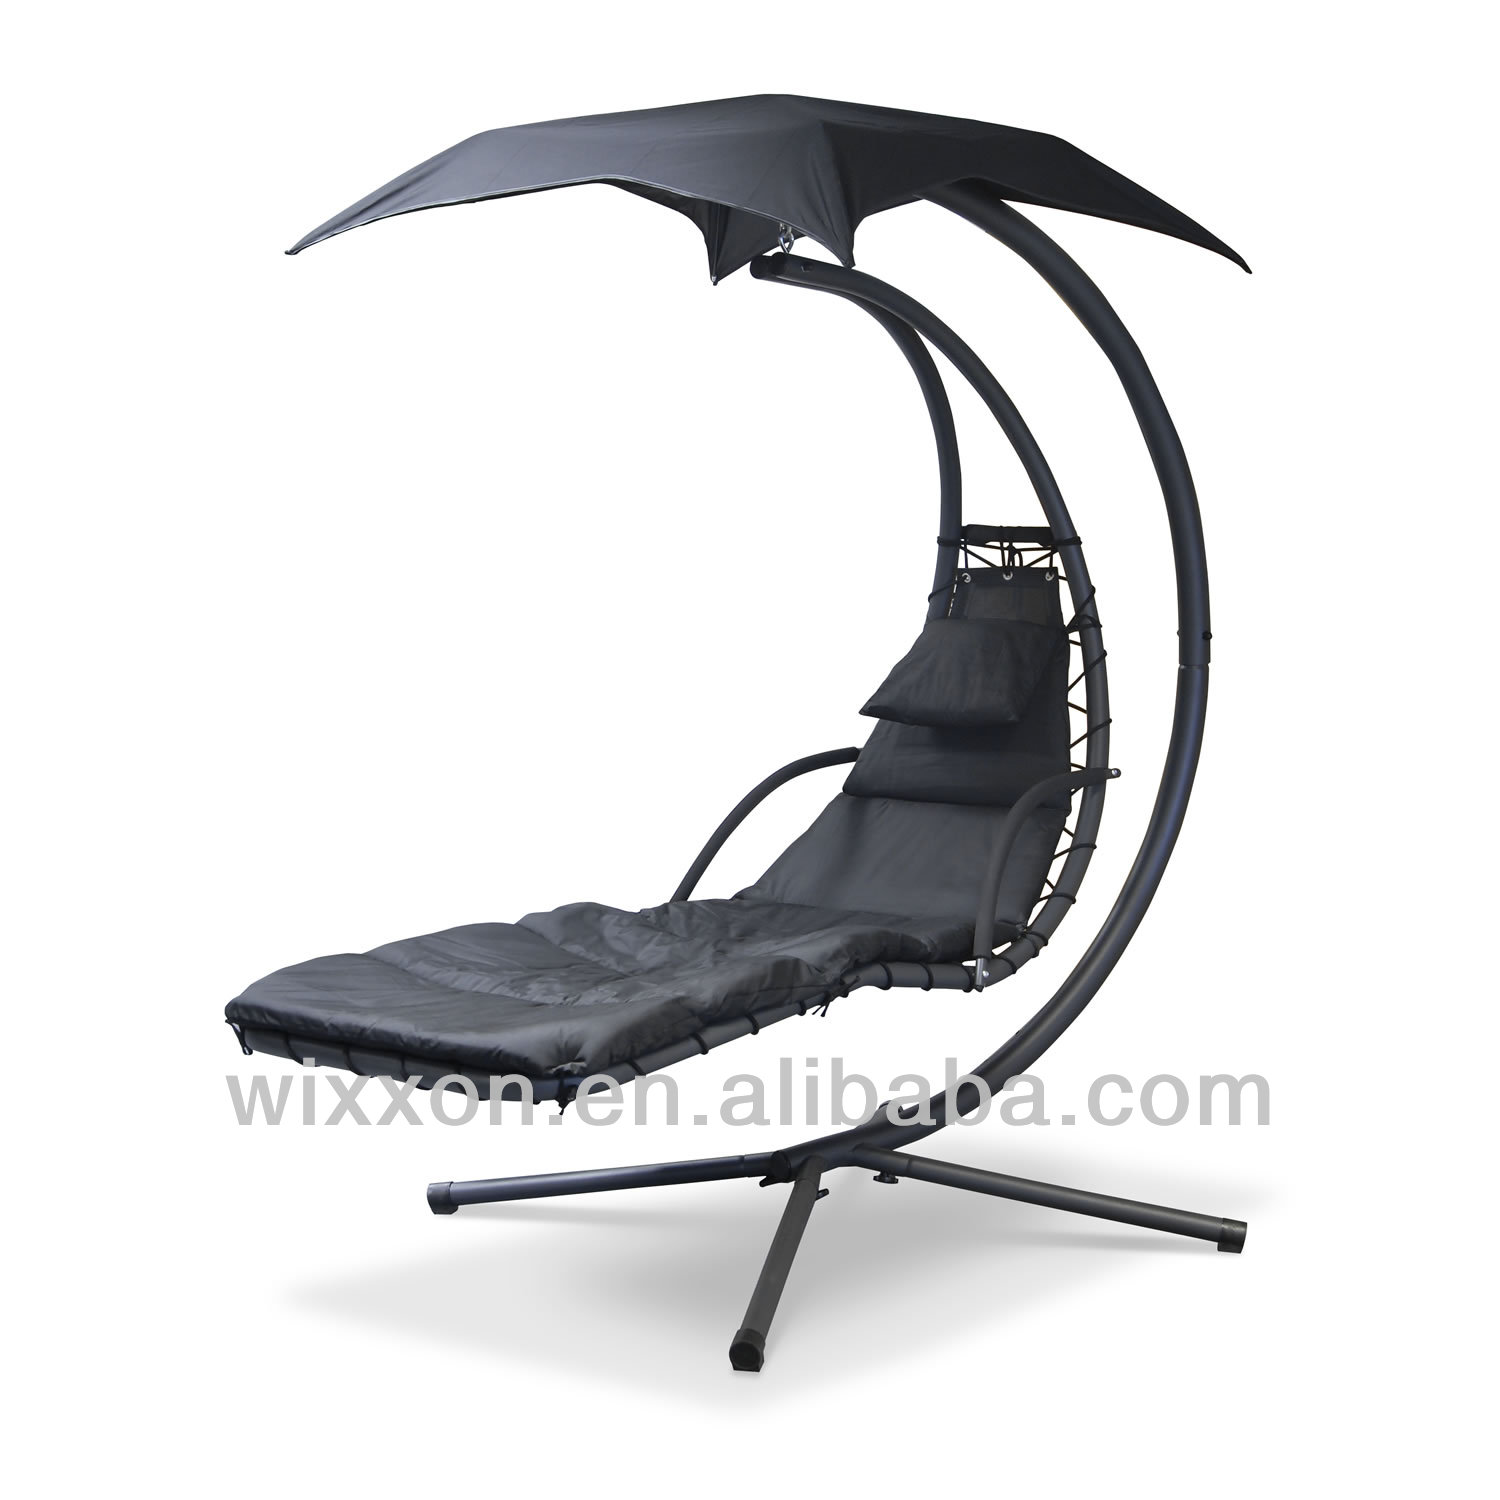 Helicopter Swingasan Chair design in black theme